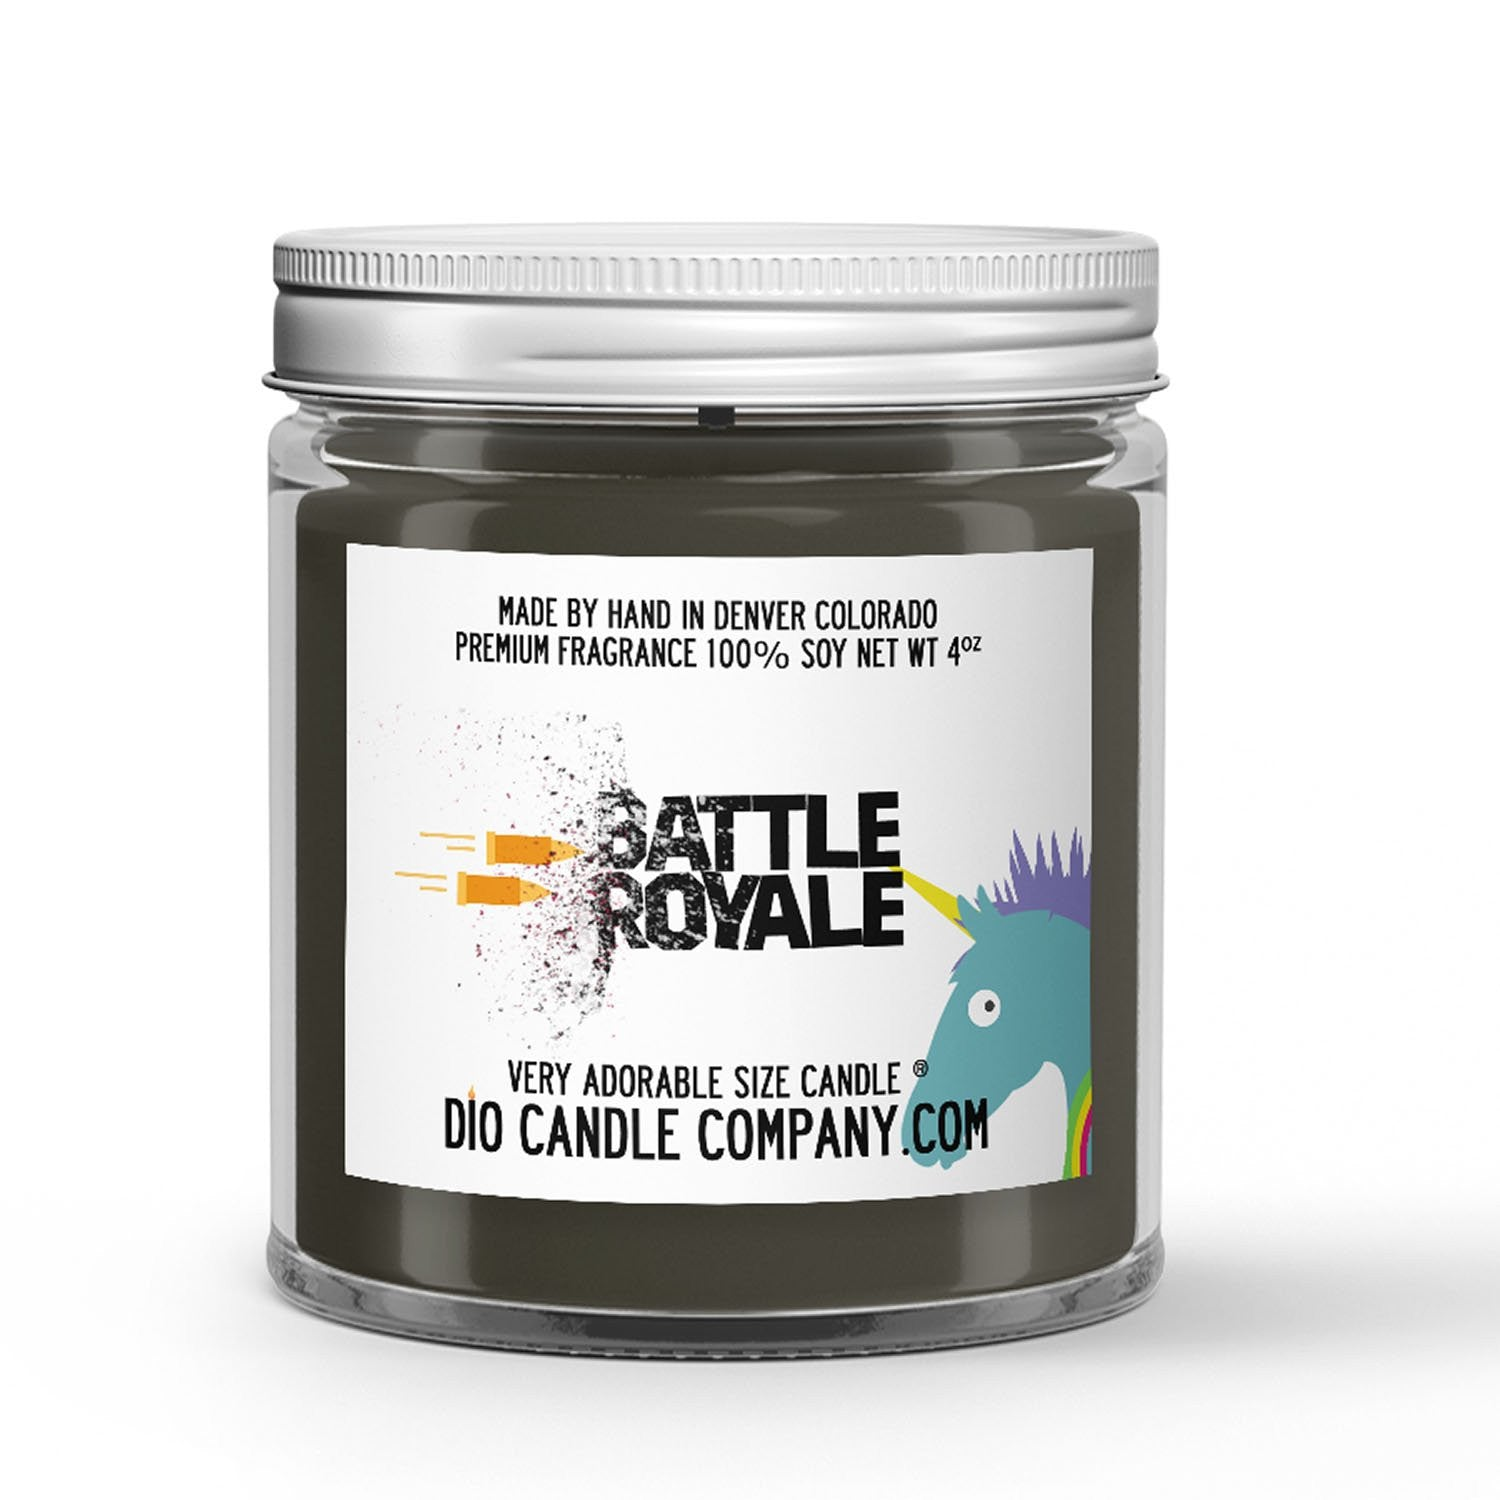 Battle Royale Candle - Vanilla Chai - 4oz Very Adorable Size Candle® - Dio Candle Company